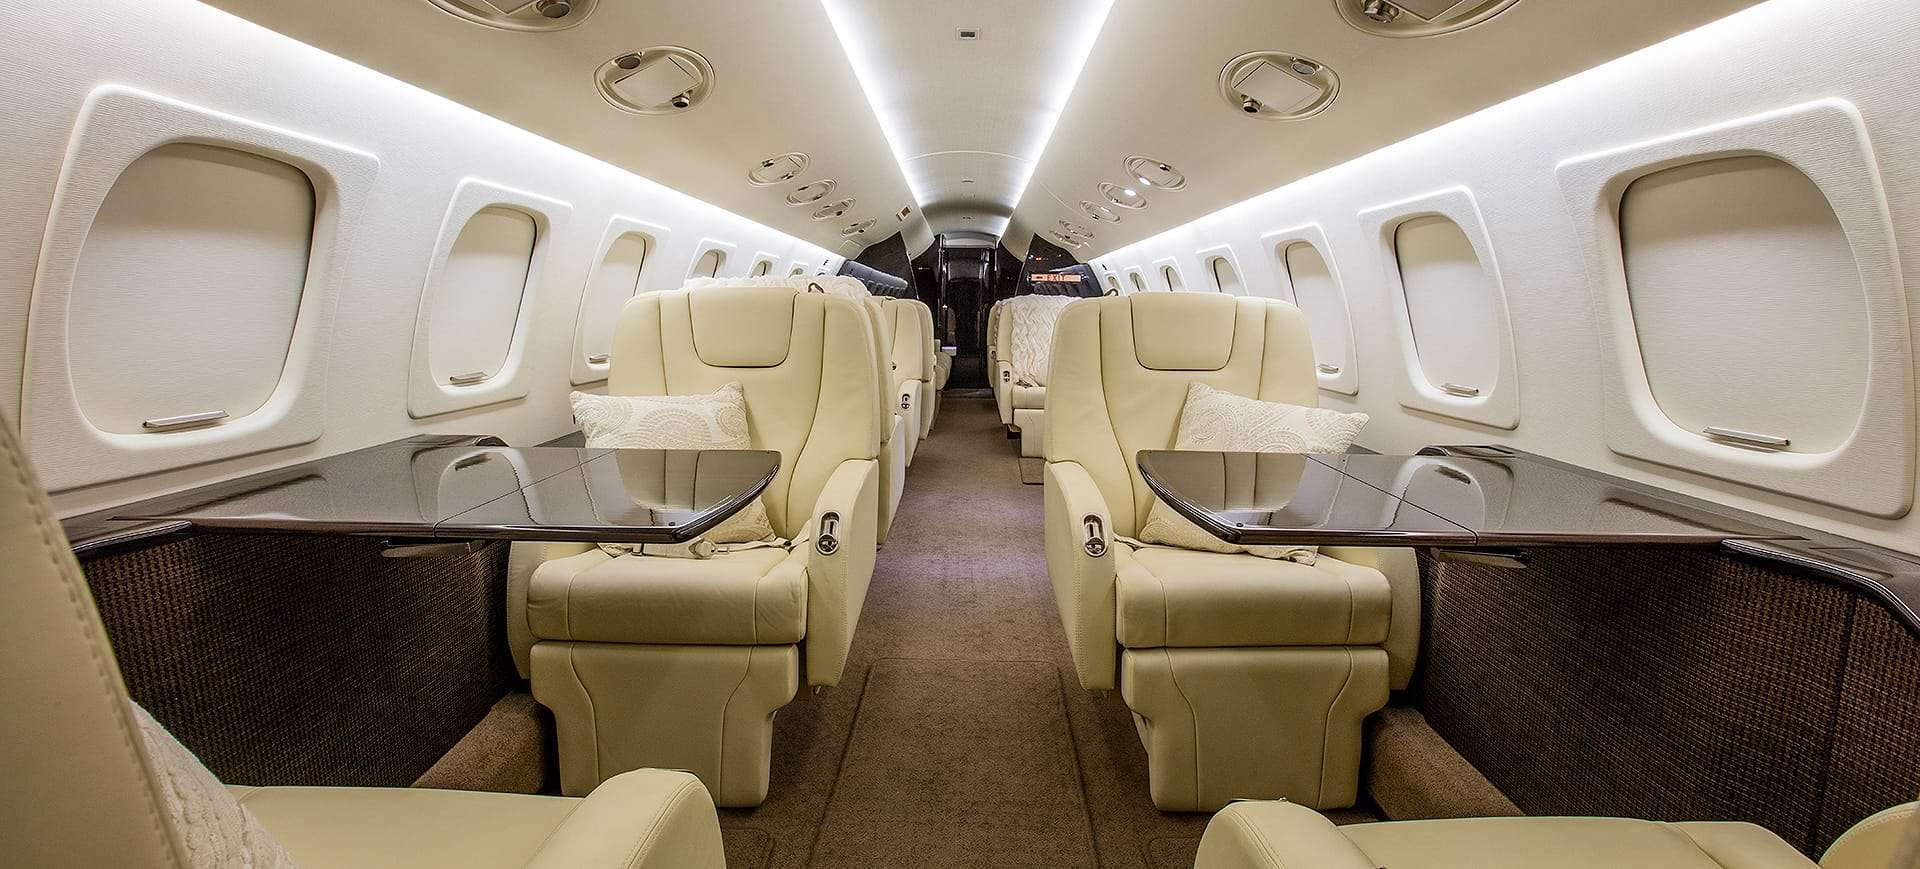 Legacy 600 Complete Interior Refurbishment